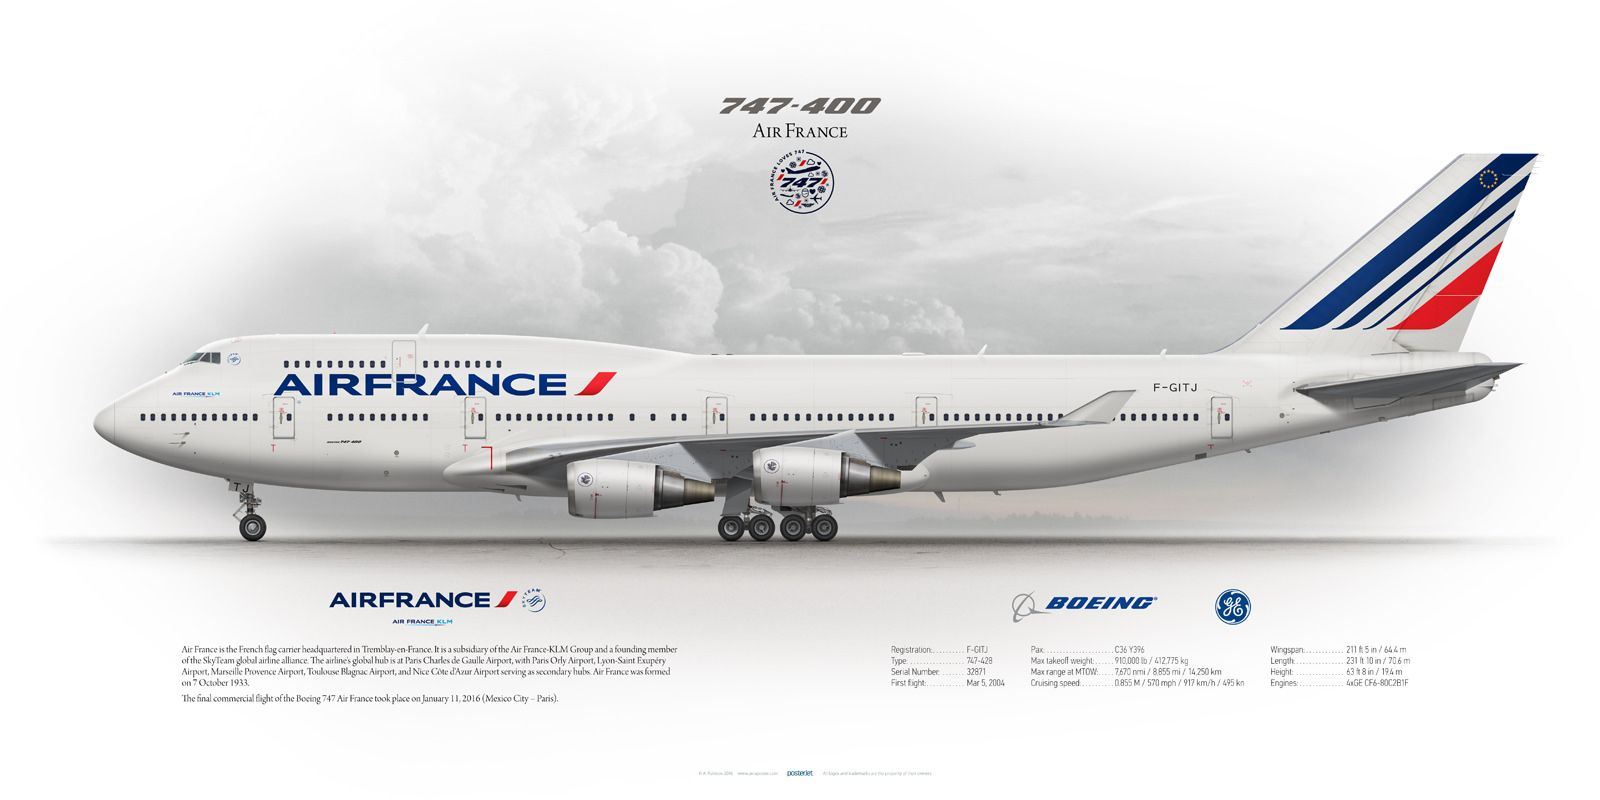 Boeing 747 400 air france f gitj boeing 747 400 air for Interieur 747 air france